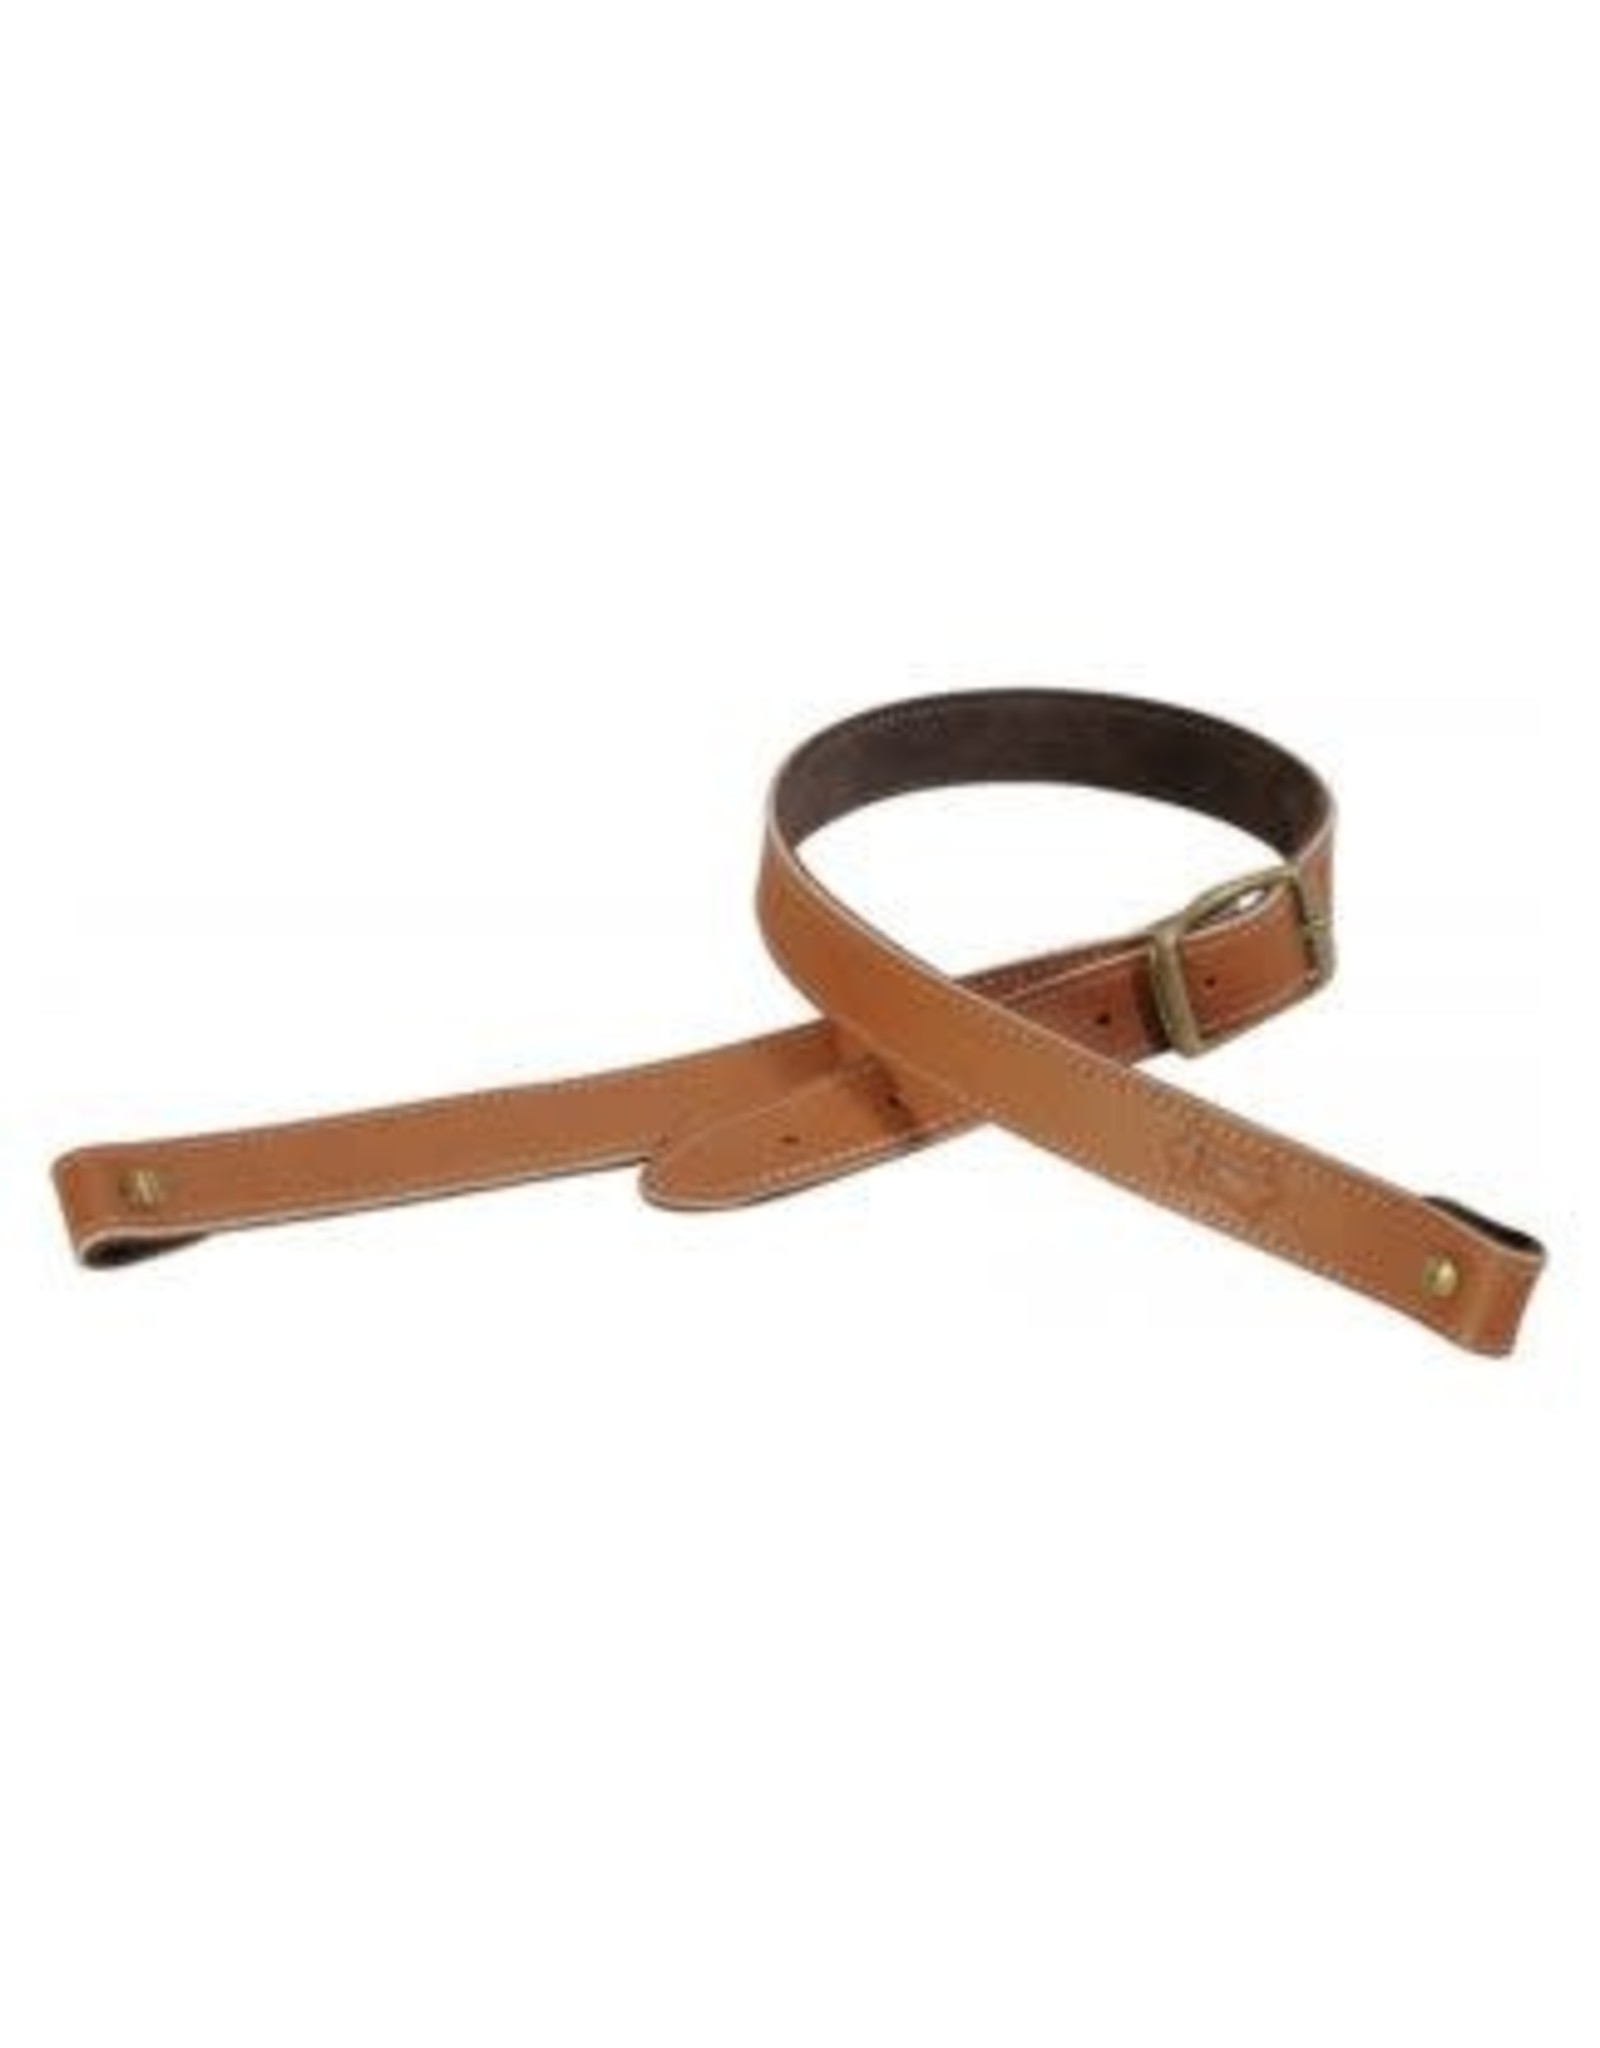 "1"" veg-tan leather rifle sling with brown suede"